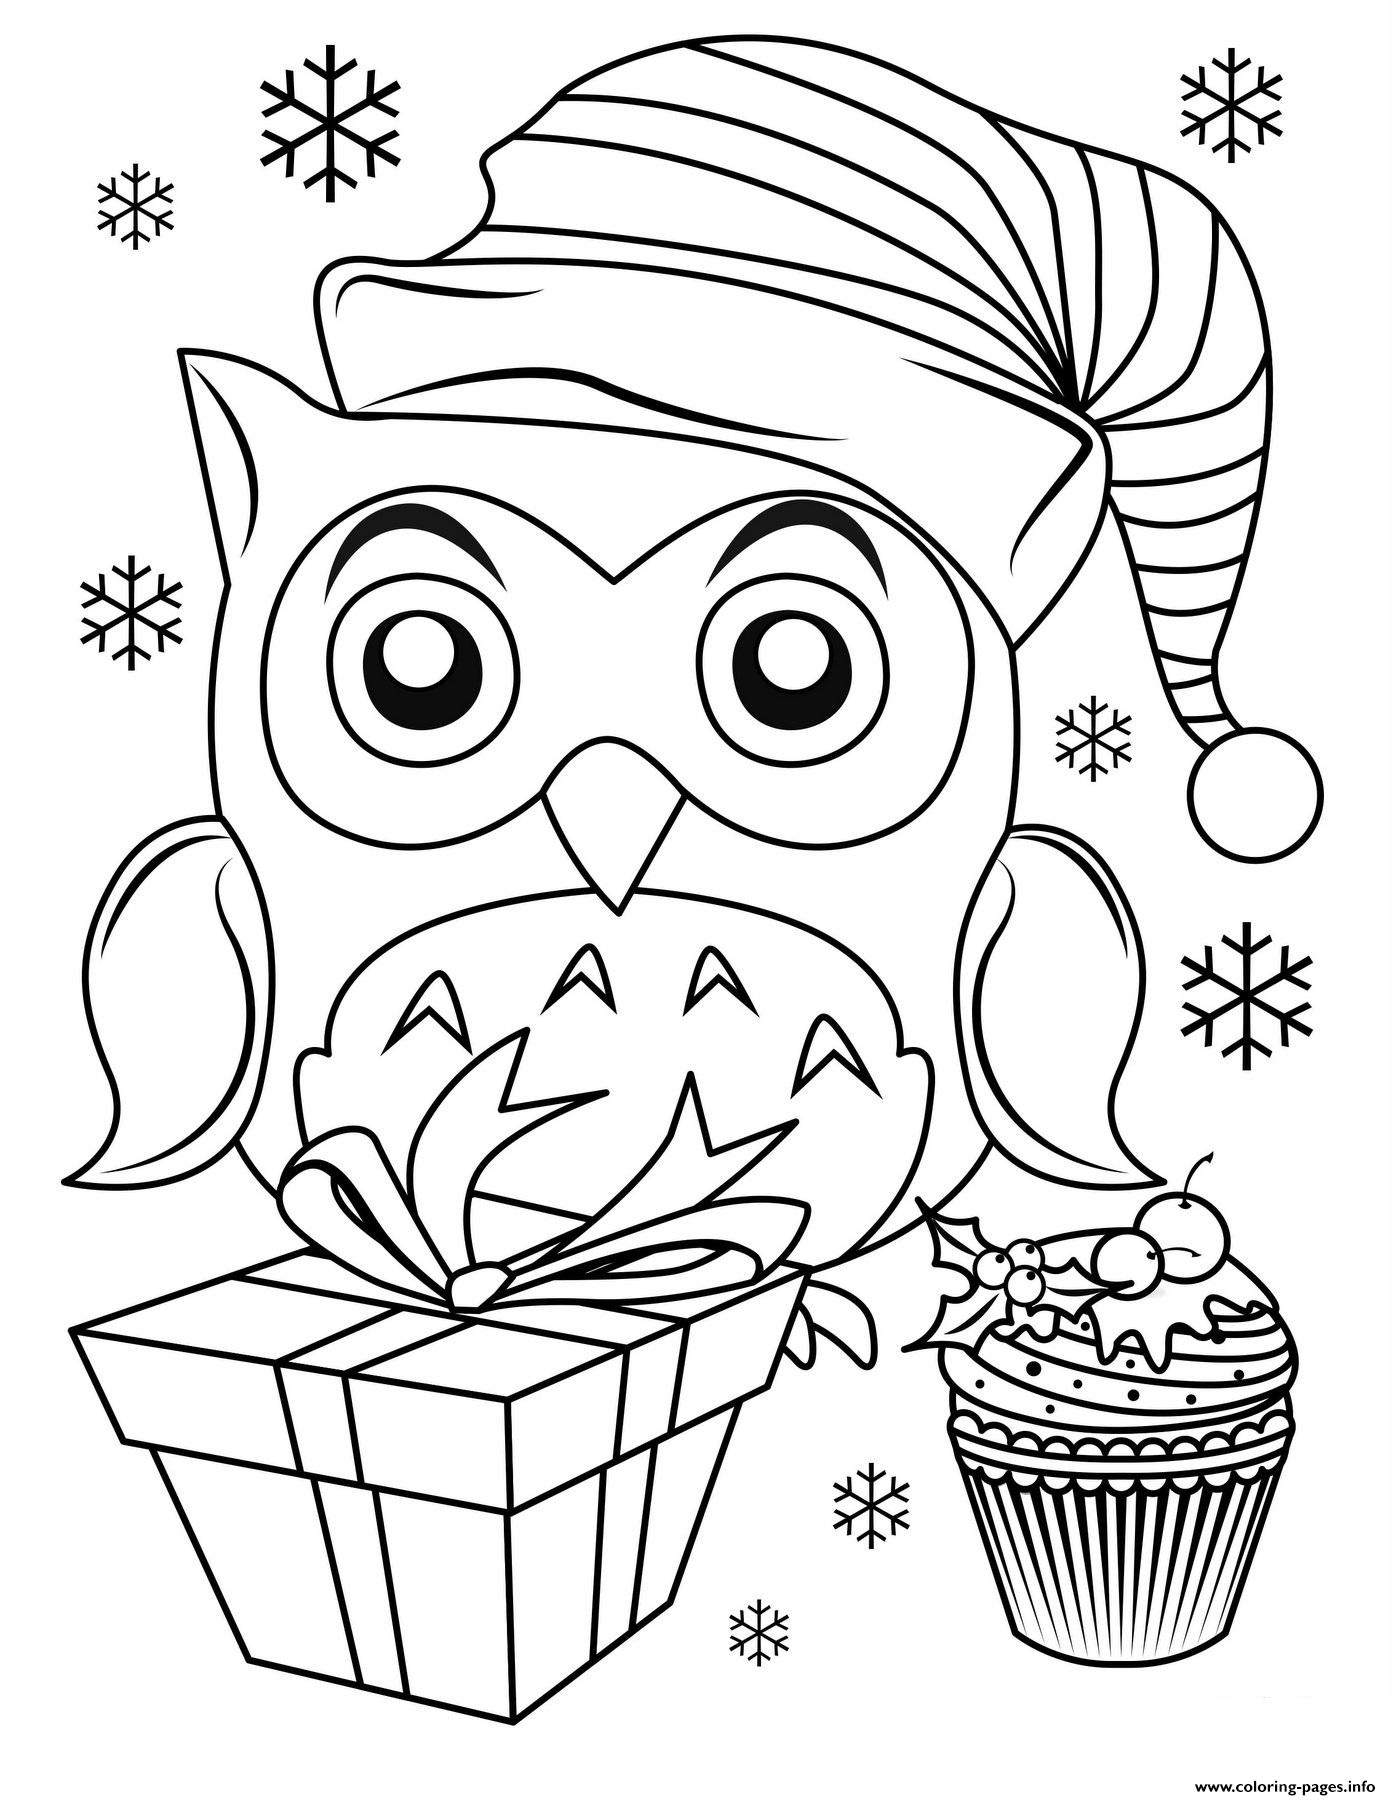 coloring picture to print cute christmas owl coloring pages printable print picture to coloring